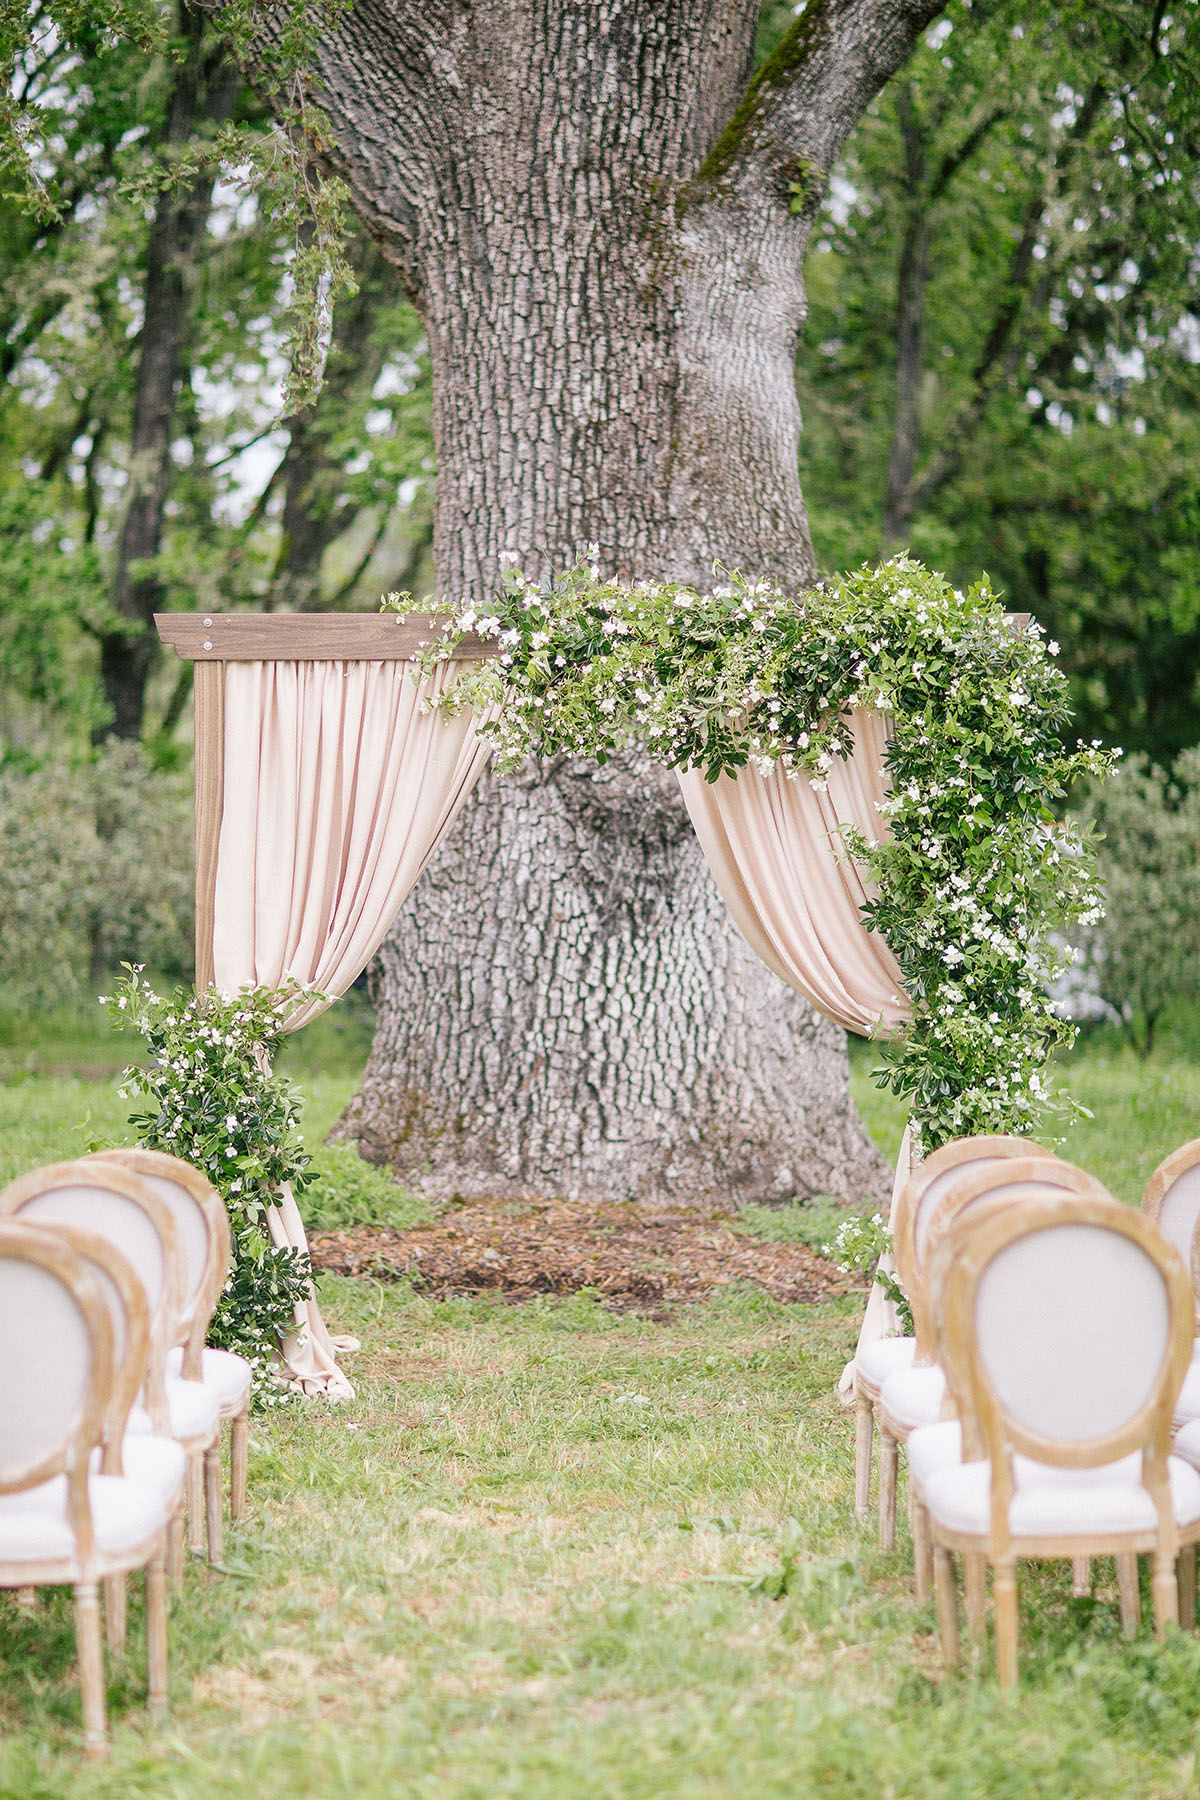 Outdoor garden wedding decoration ideas  Intimate Italian Style Garden Wedding Ideas  Wedding ceremonies